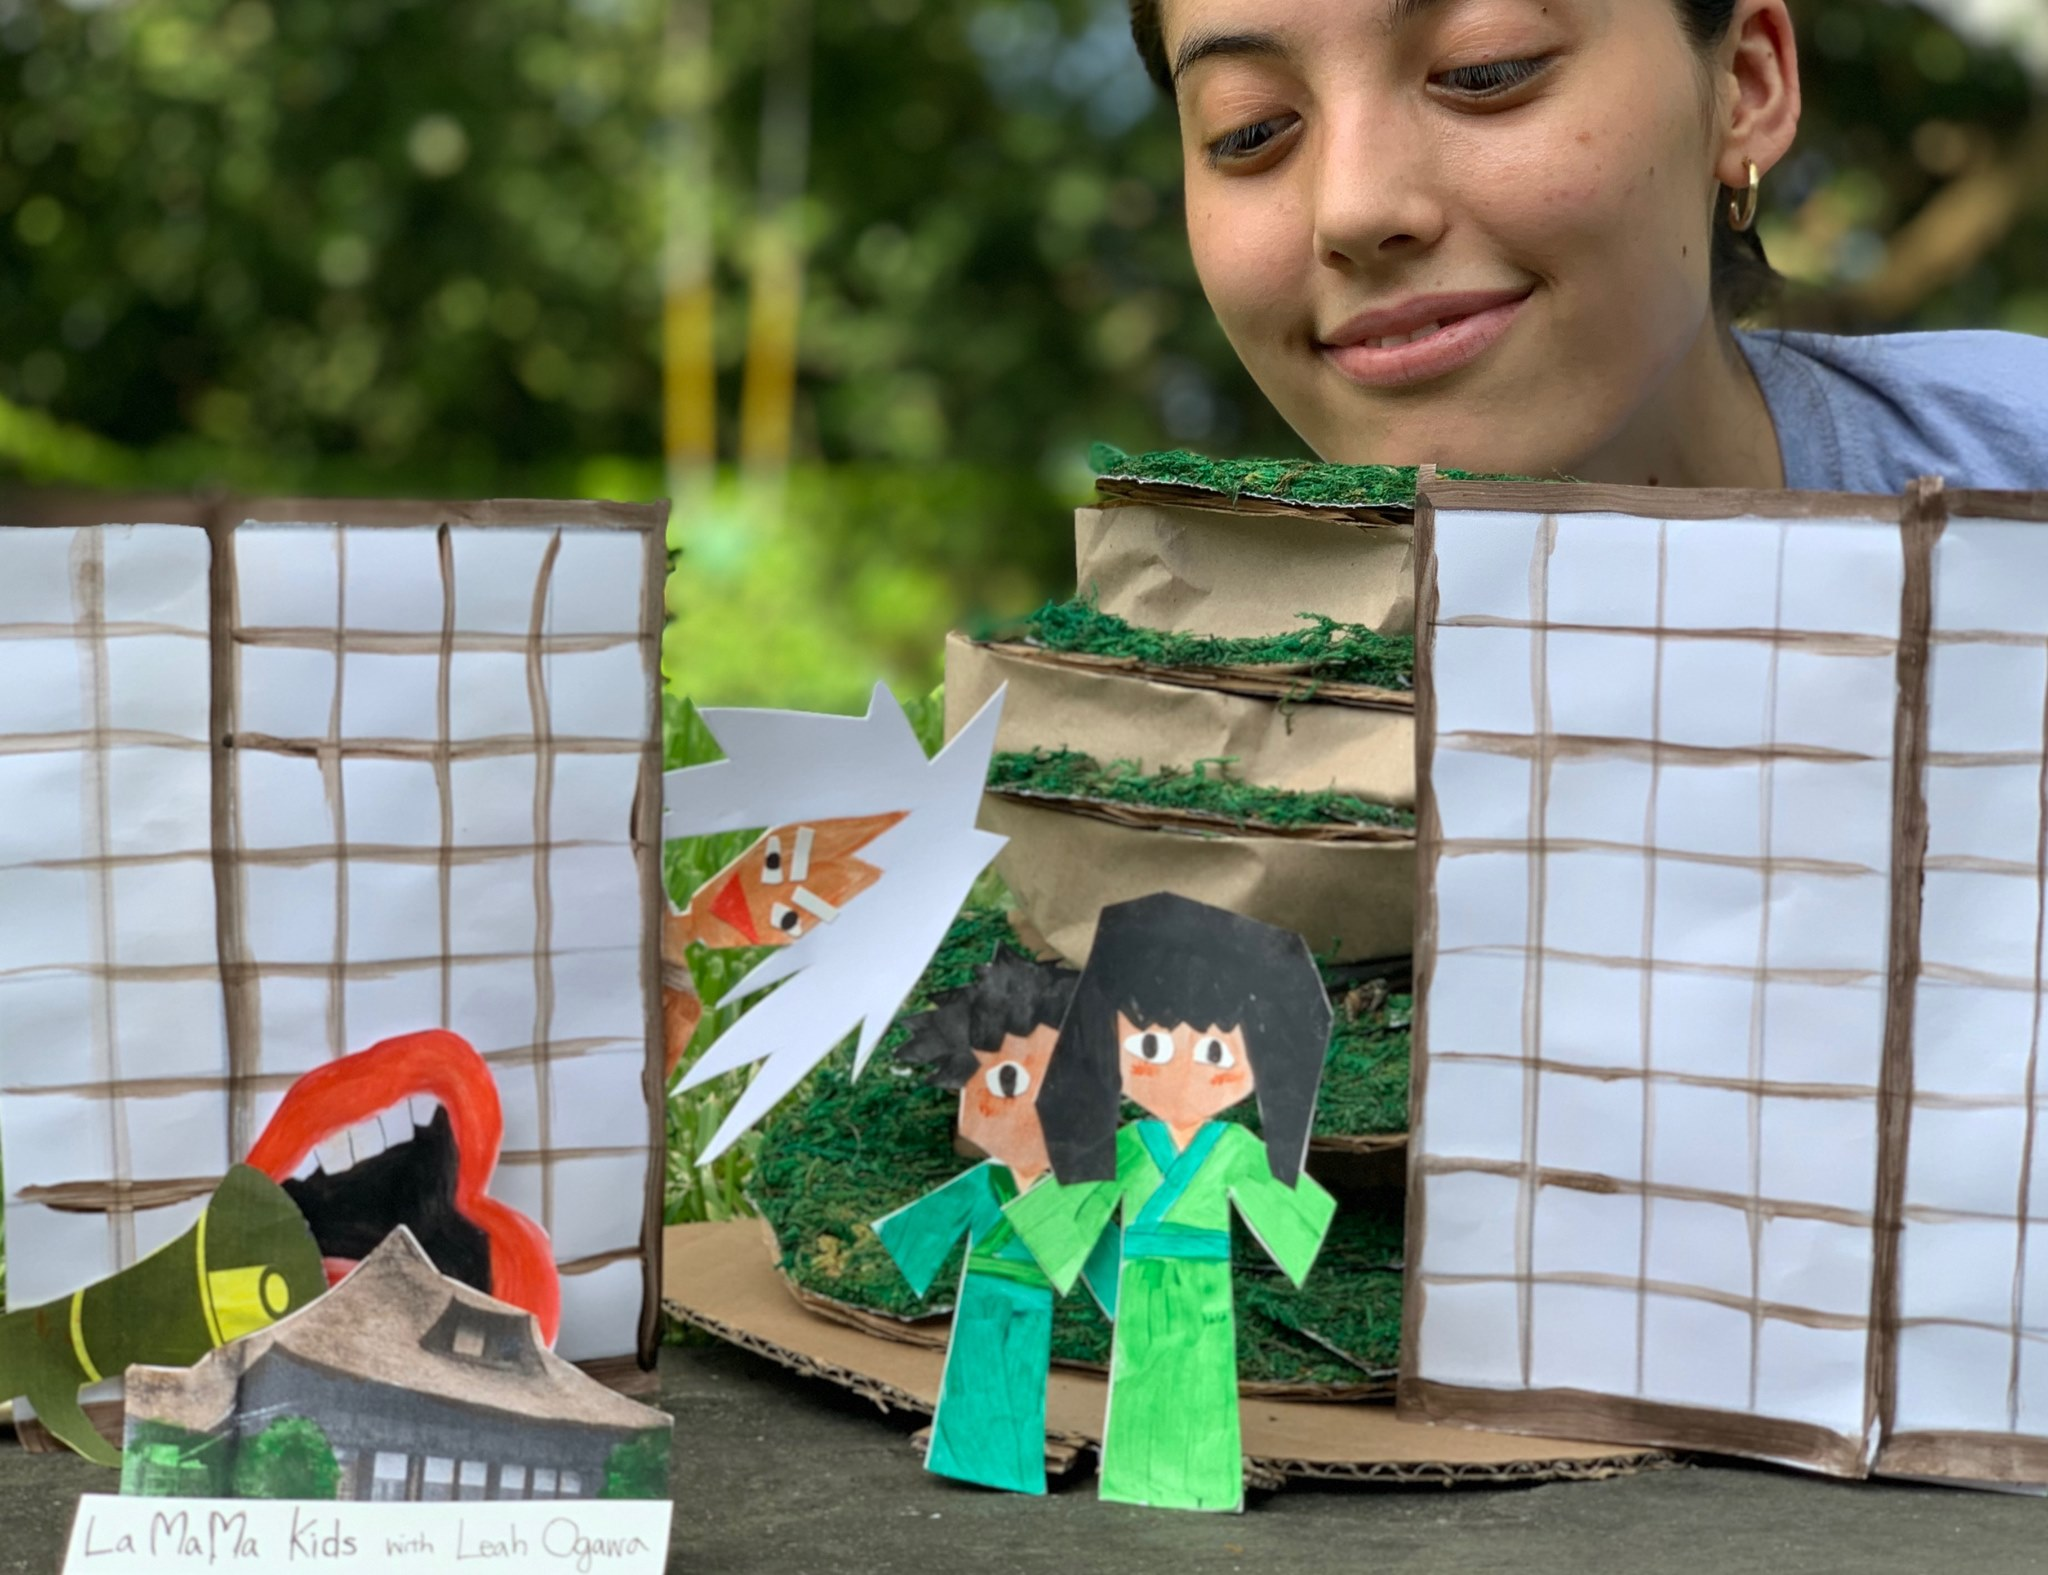 leah ogawa stands in a garden looking at her paper puppets who appear to be paper and dressed in green